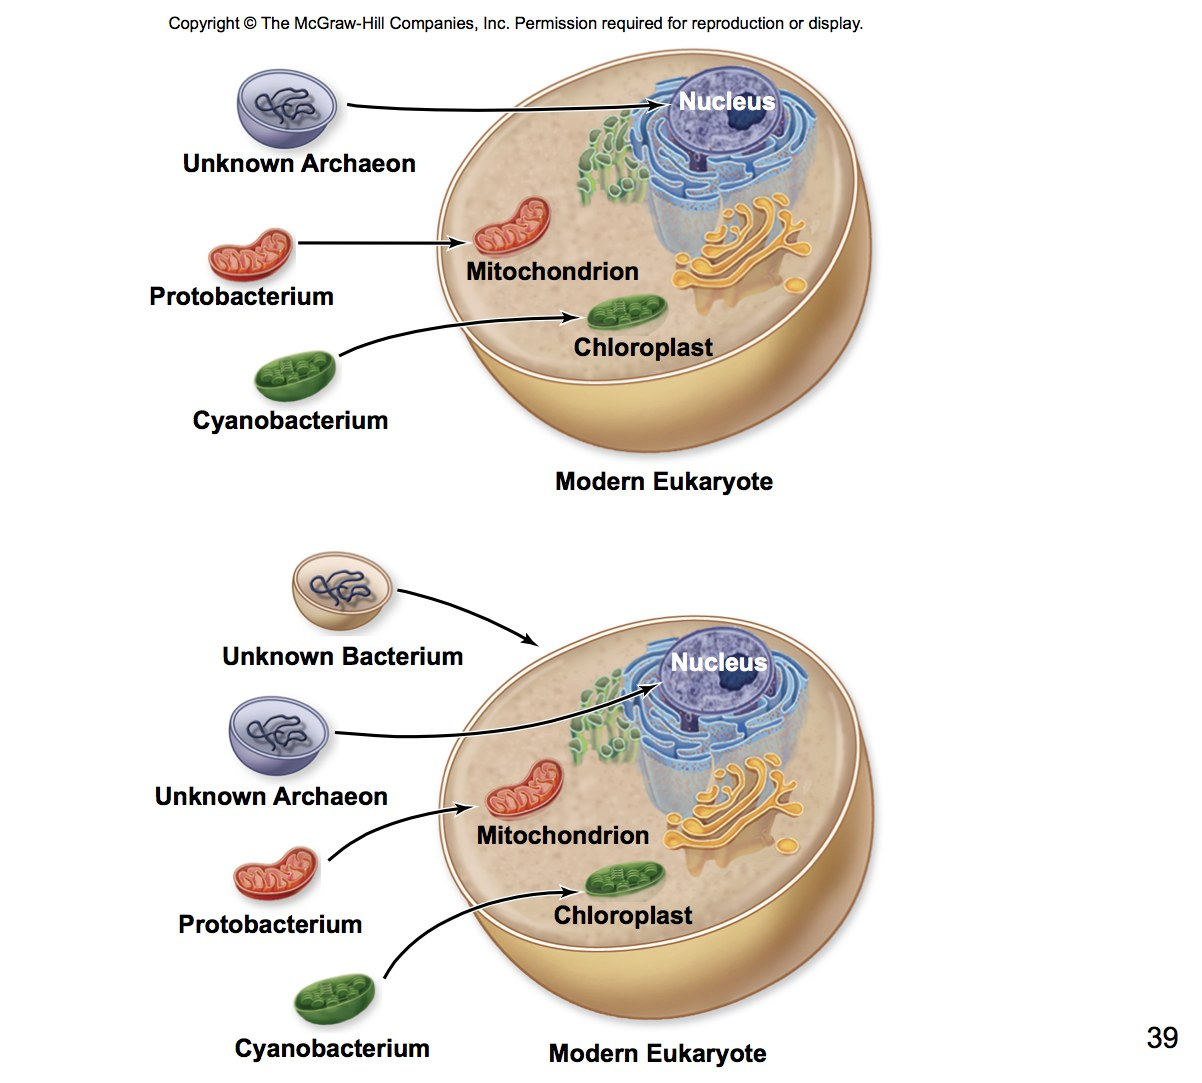 """endosymbiotic theory the modern or organelle biology essay Membrane-bound organelles """"compartmentalize"""" parts of the cell for specific  functions  her endosymbiotic theory is one of the mainstays of cell biology   the same size as modern day prokaryotes, have their own dna, and are capable  of  most textbooks have a summary table or diagram at the end of the cell  chapter."""